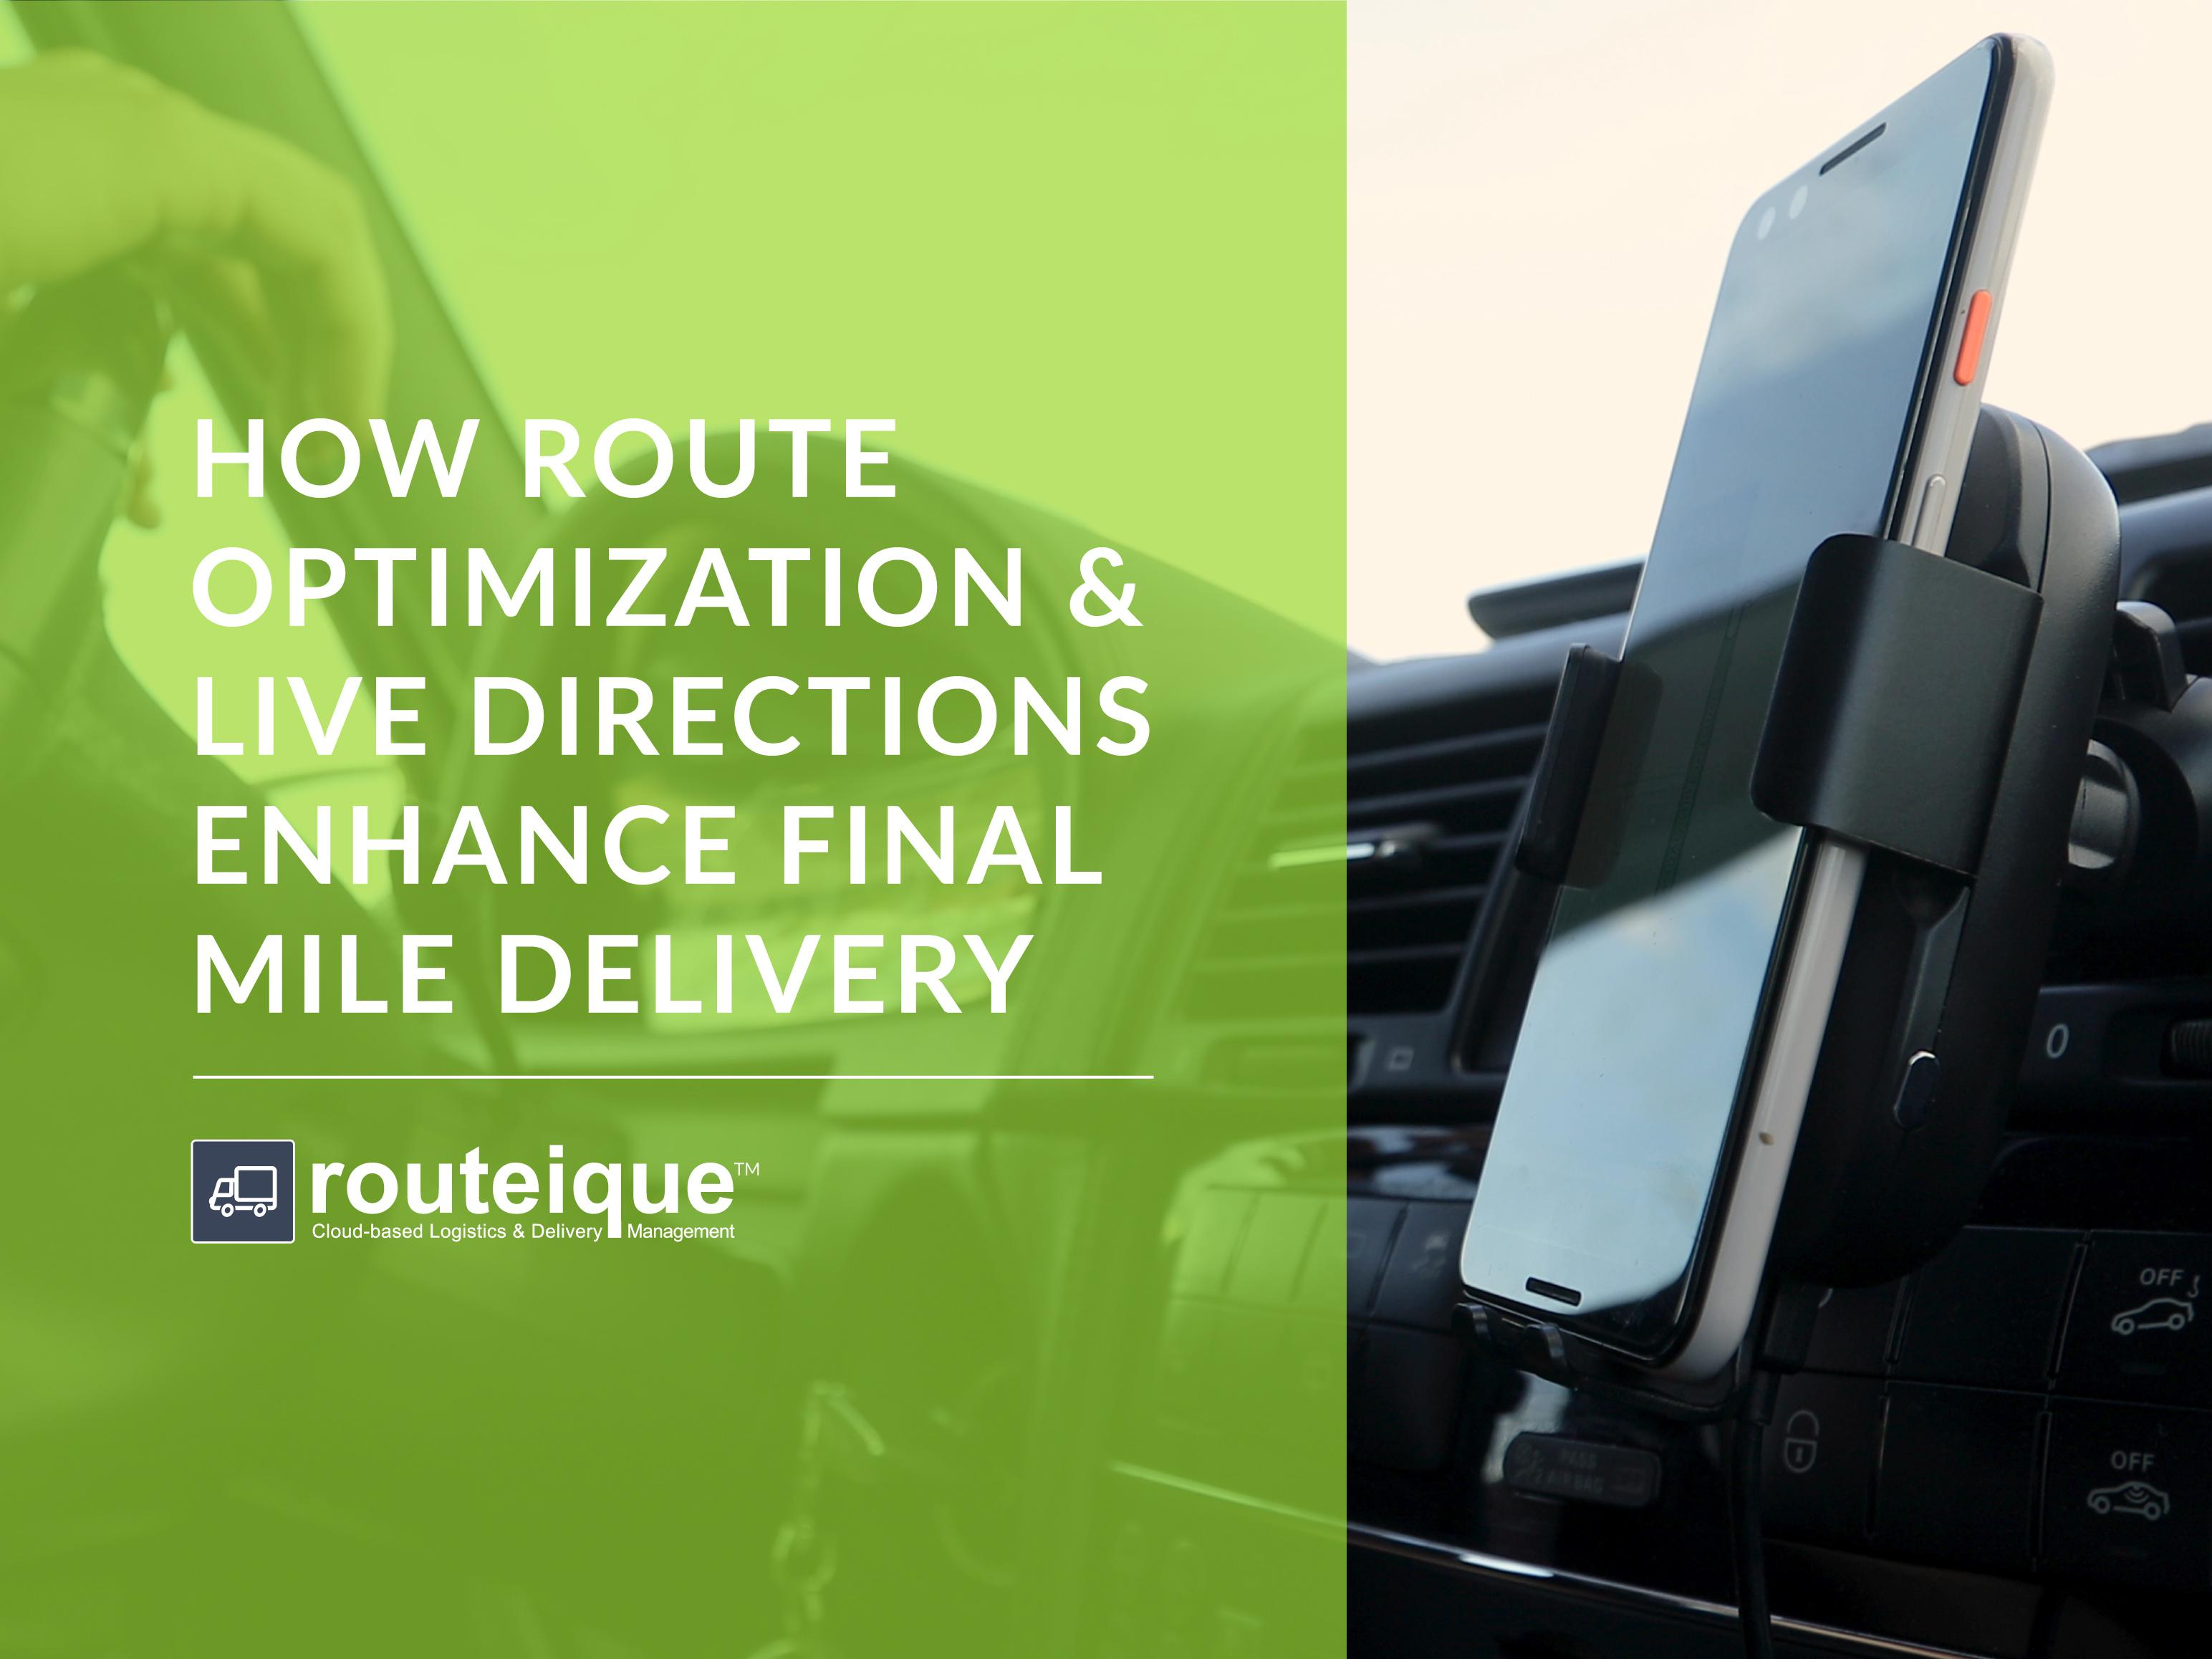 Routeique Blog - Route Optimization and Live Directions